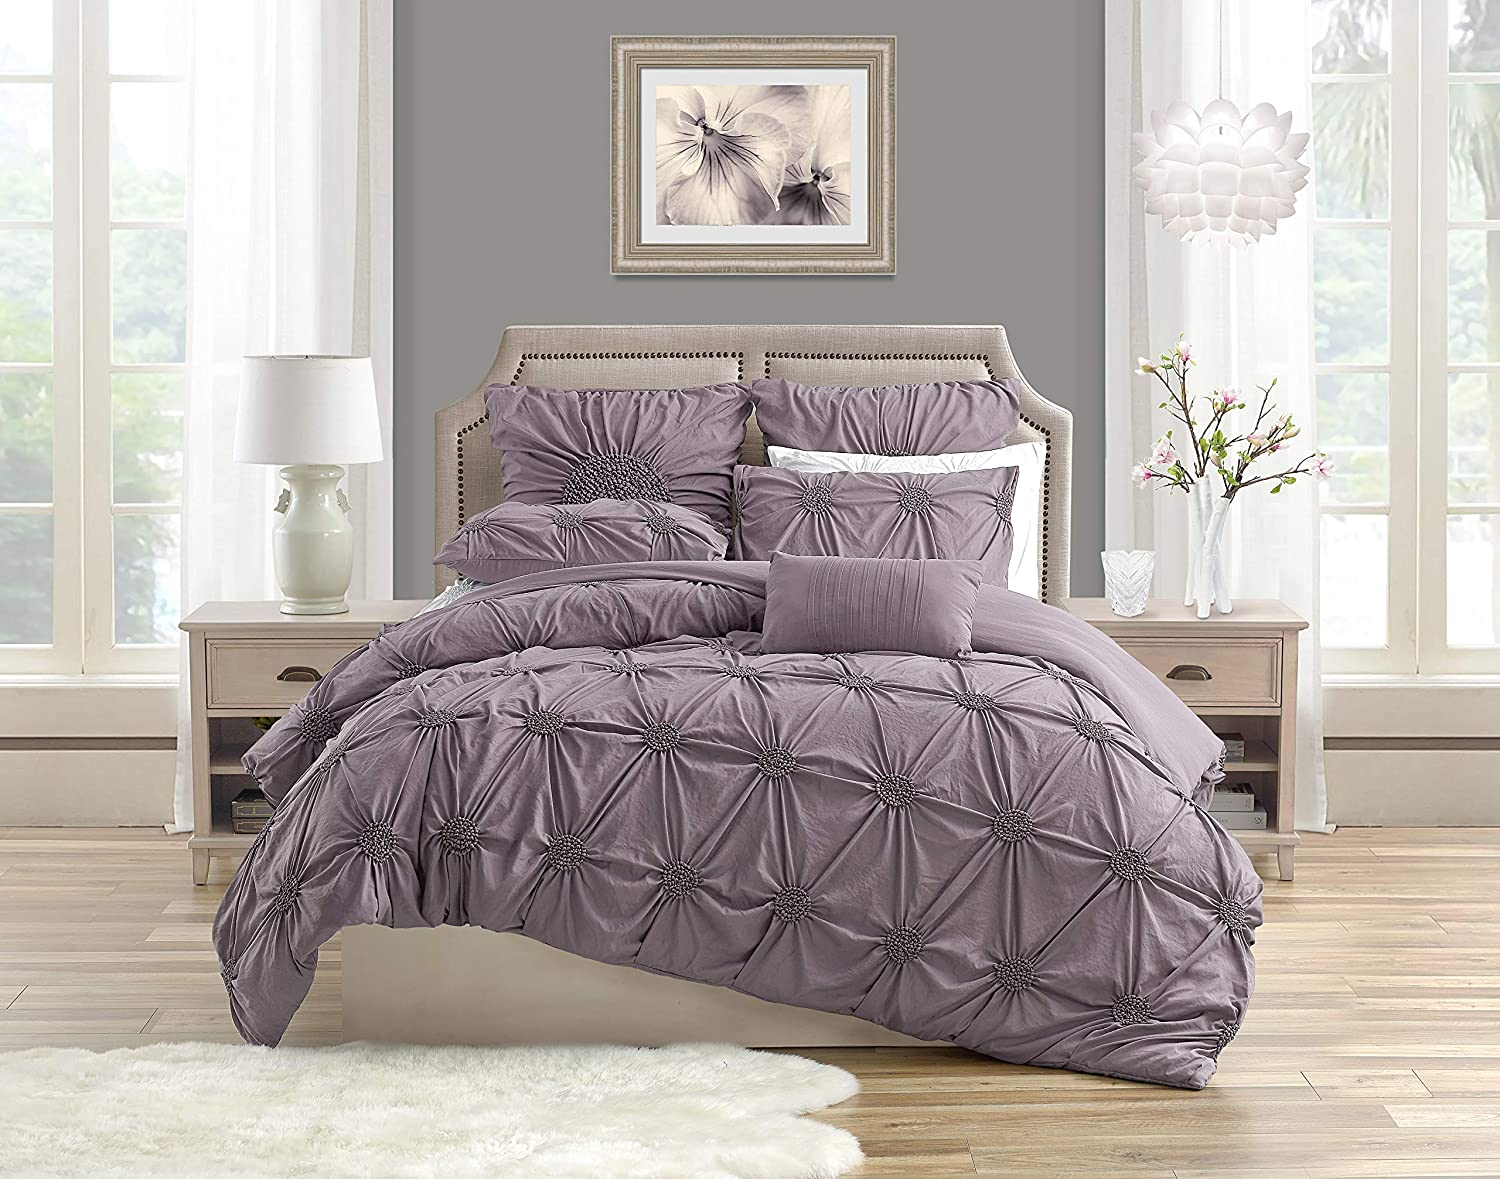 Swift Home Premium Romantic Bedding Set Collection 3-Piece Ruched Pinch Pleat Rosette Floral Pintuck Duvet Cover & Sham Set - King/Cal King, Mauve